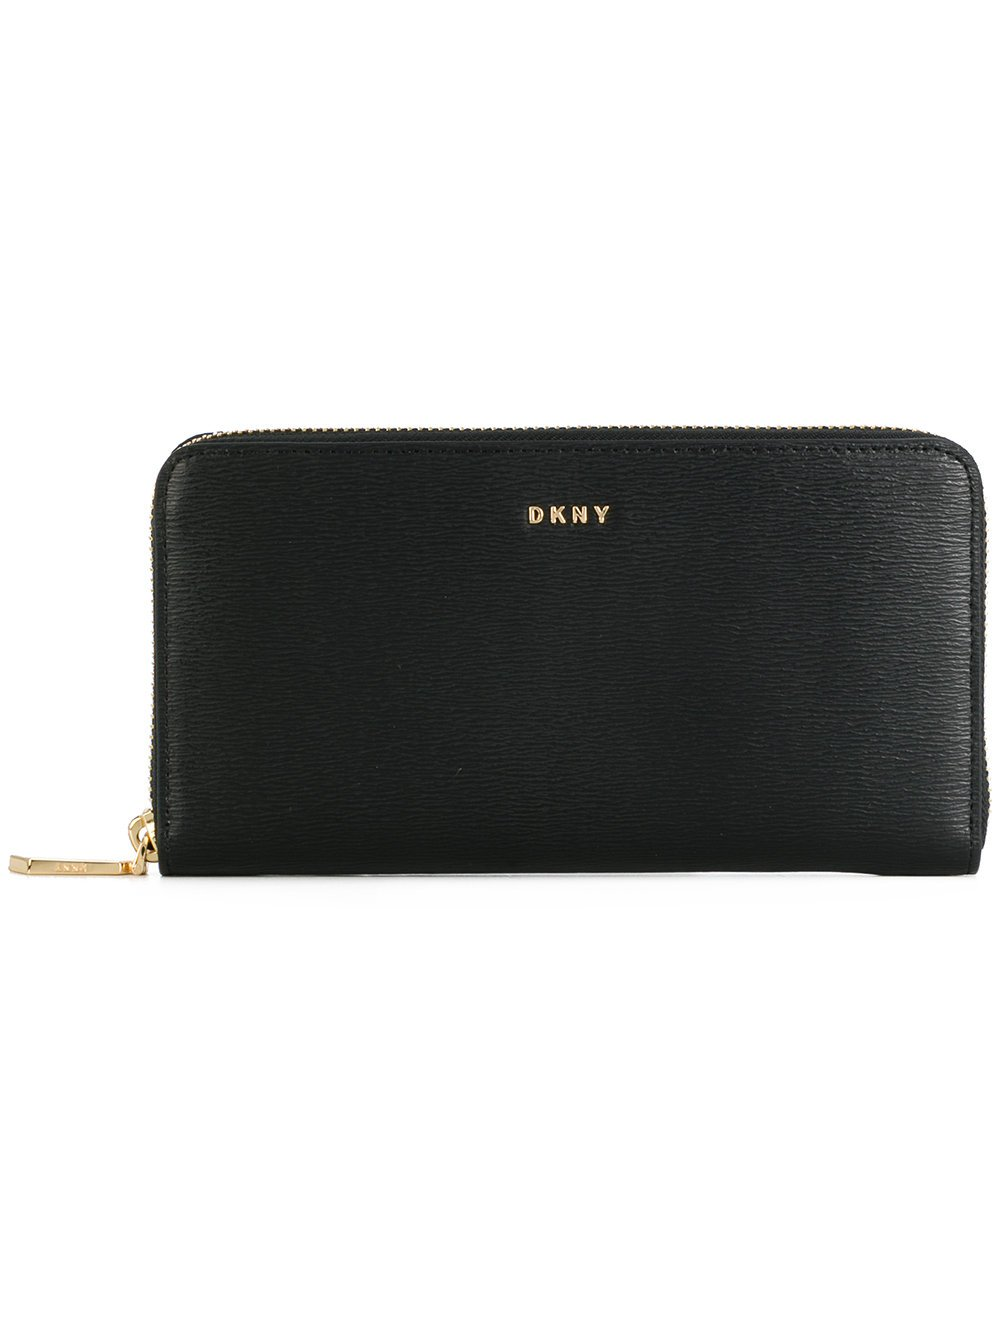 DKNY PORTFEL LARGE ZIP AROUND WALLET - Lovely Madness